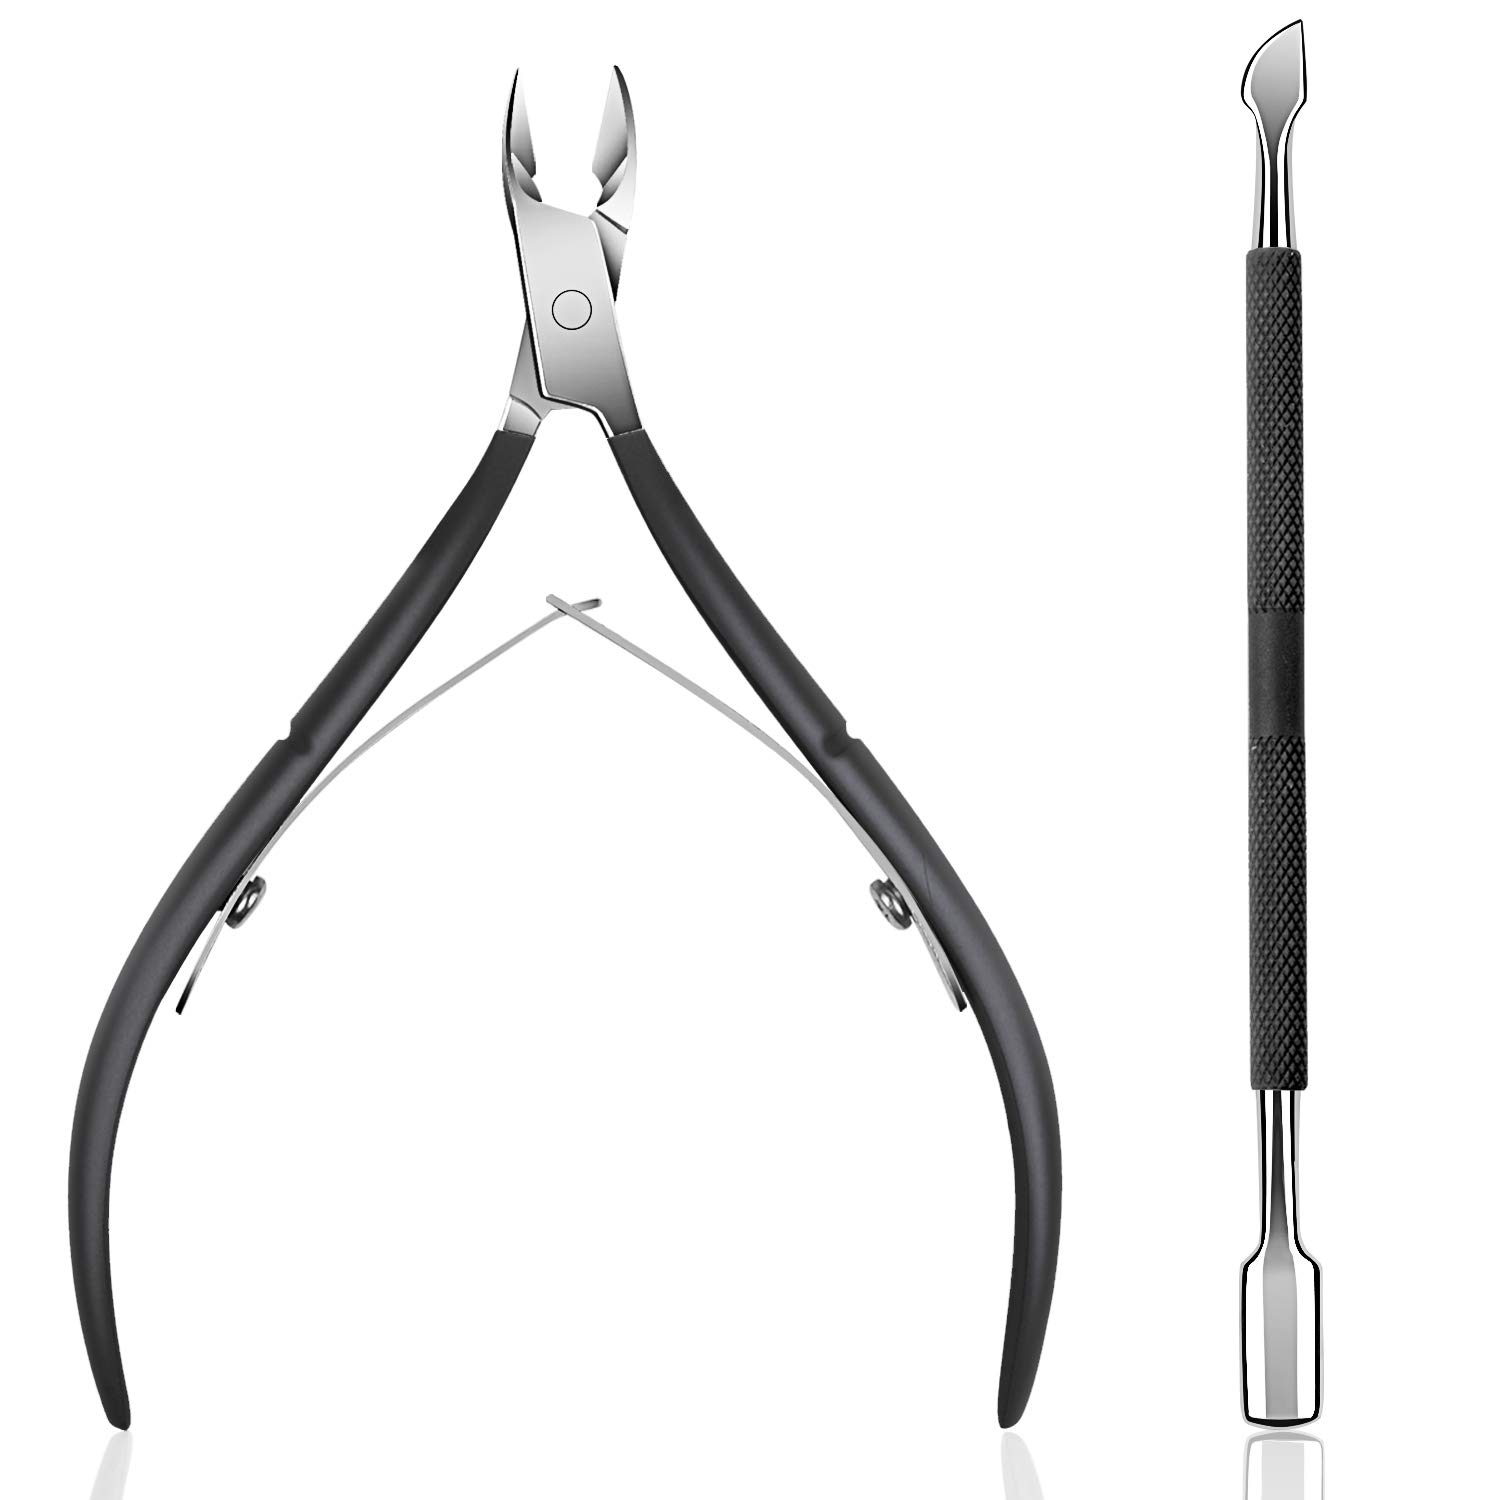 Cuticle Trimmer with Cuticle Pusher - Ejiubas Cuticle Remover Cuticle Nipper Professional Stainless Steel Cuticle Cutter Clipper Durable Pedicure Manicure Tools for Fingernails and Toenails